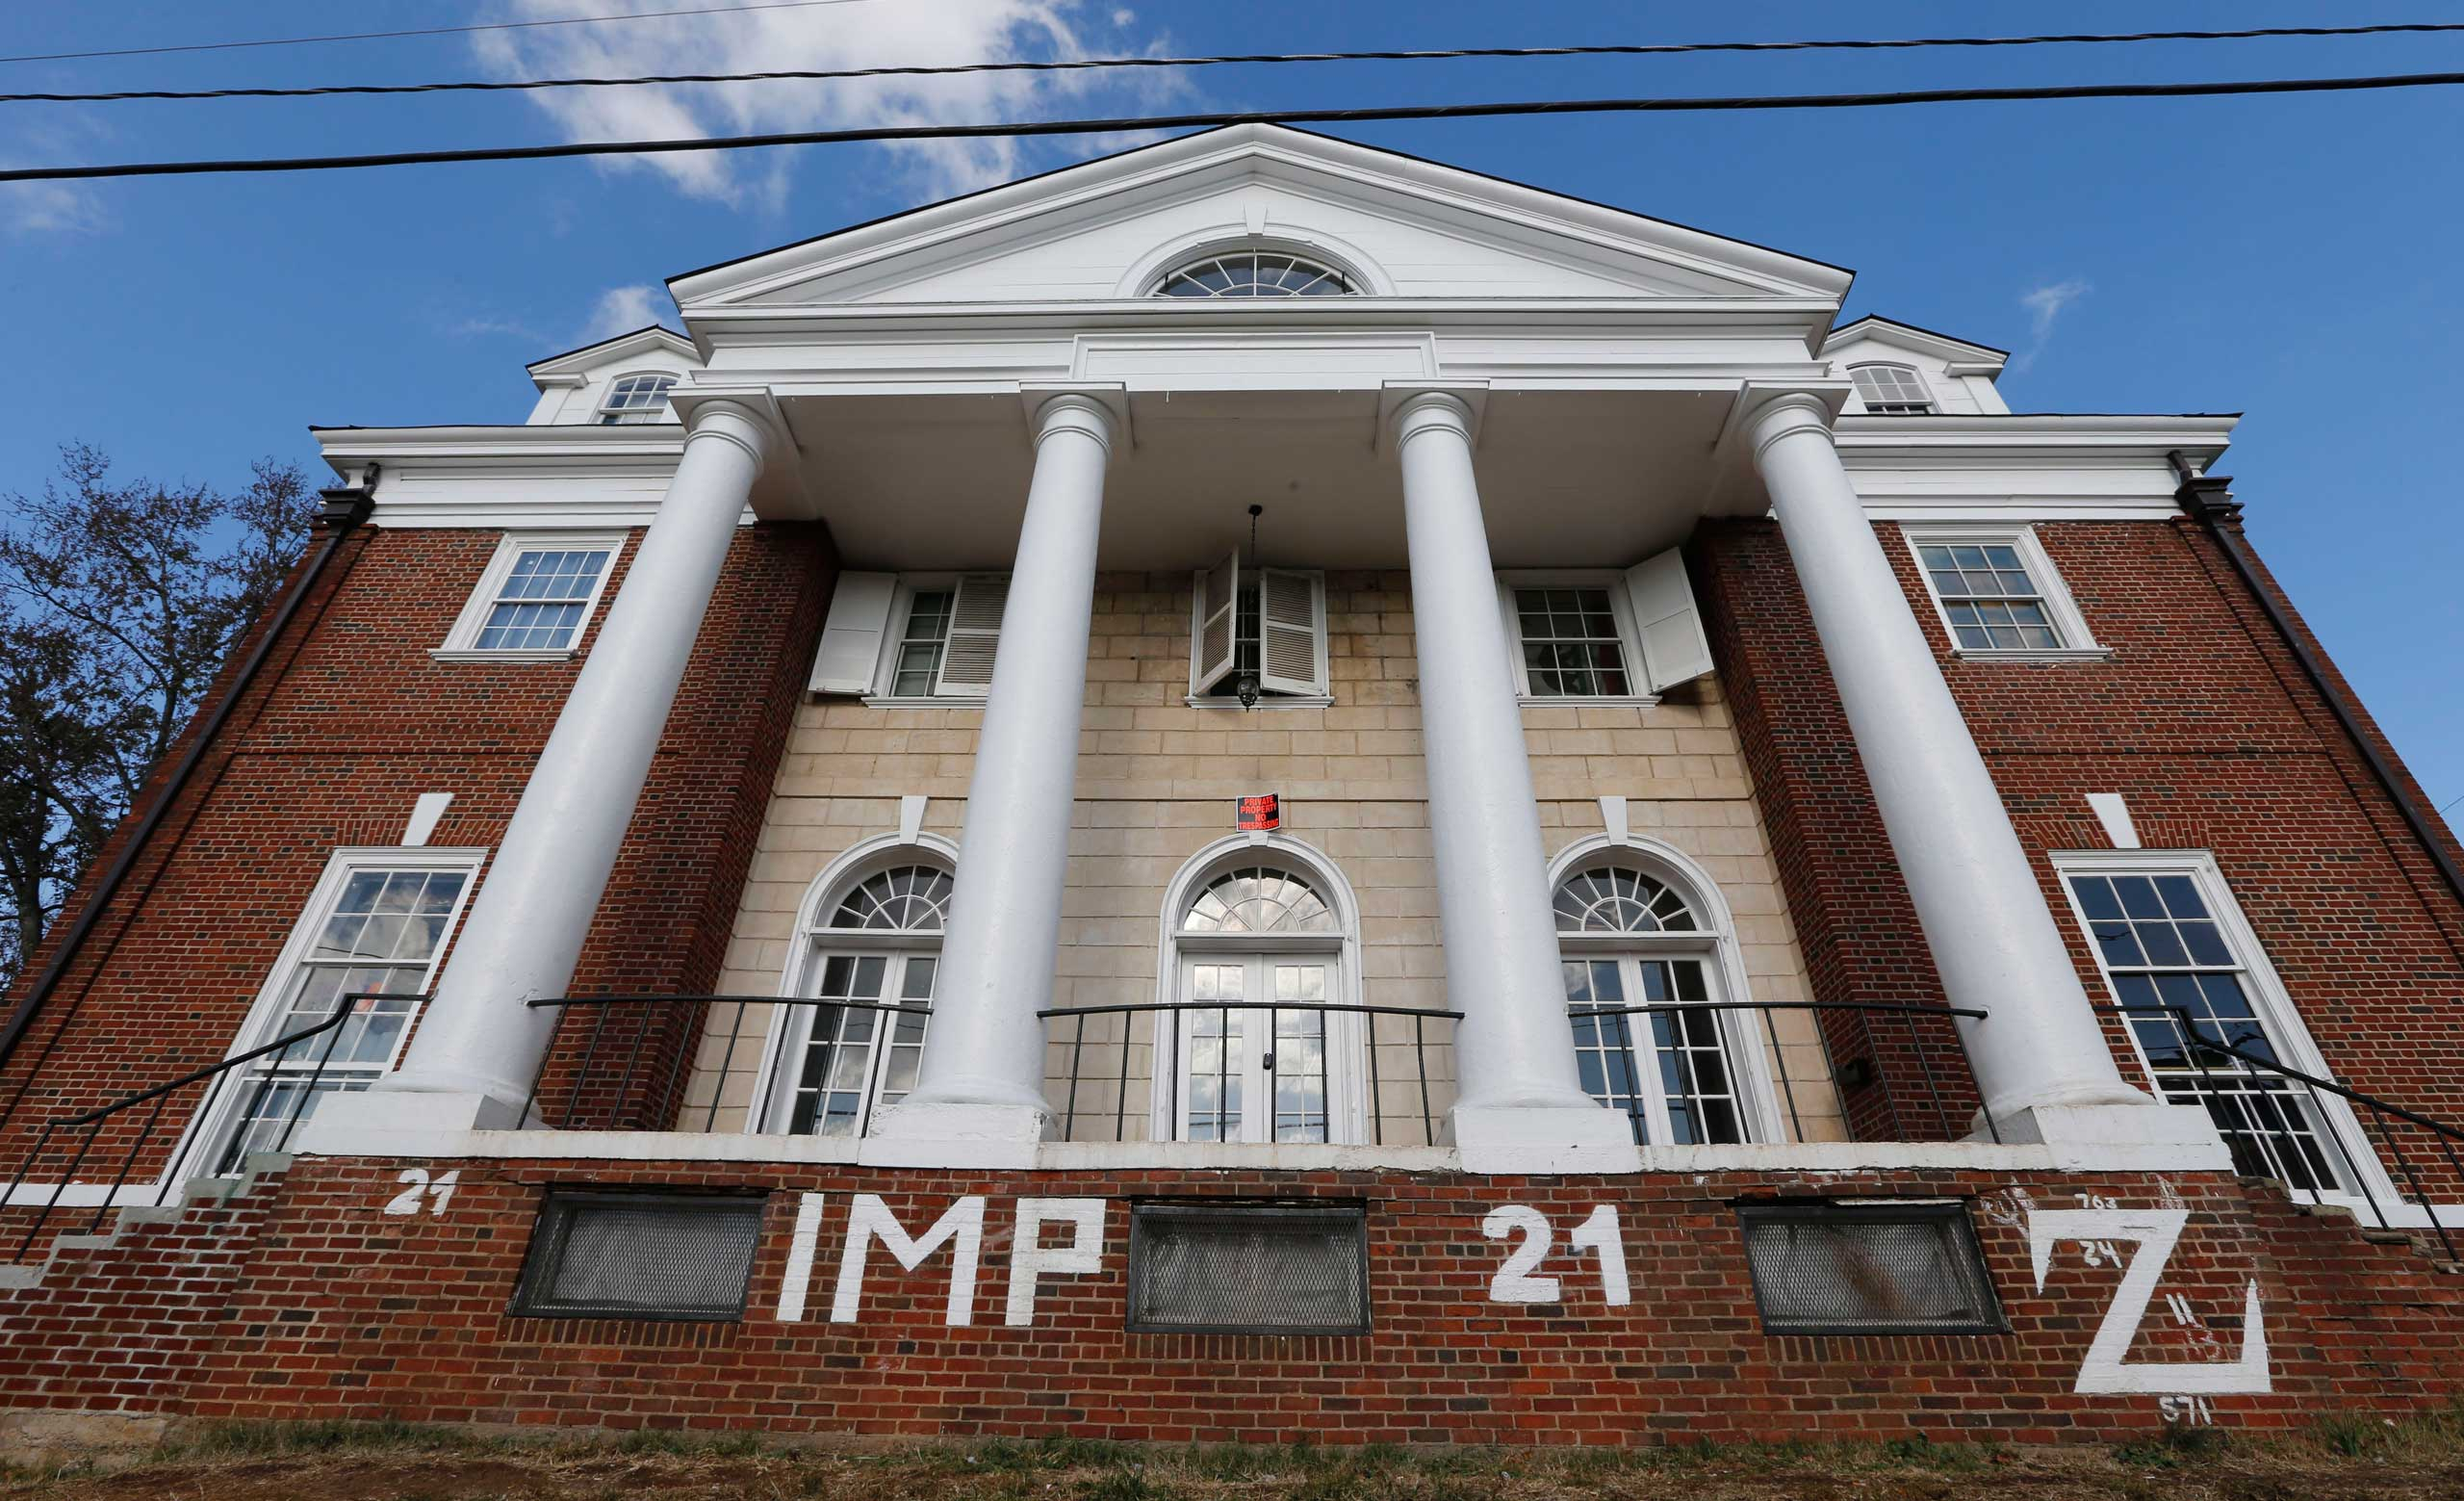 The Phi Kappa Psi house at the University of Virginia in Charlottesville, Va., Nov. 24, 2014.